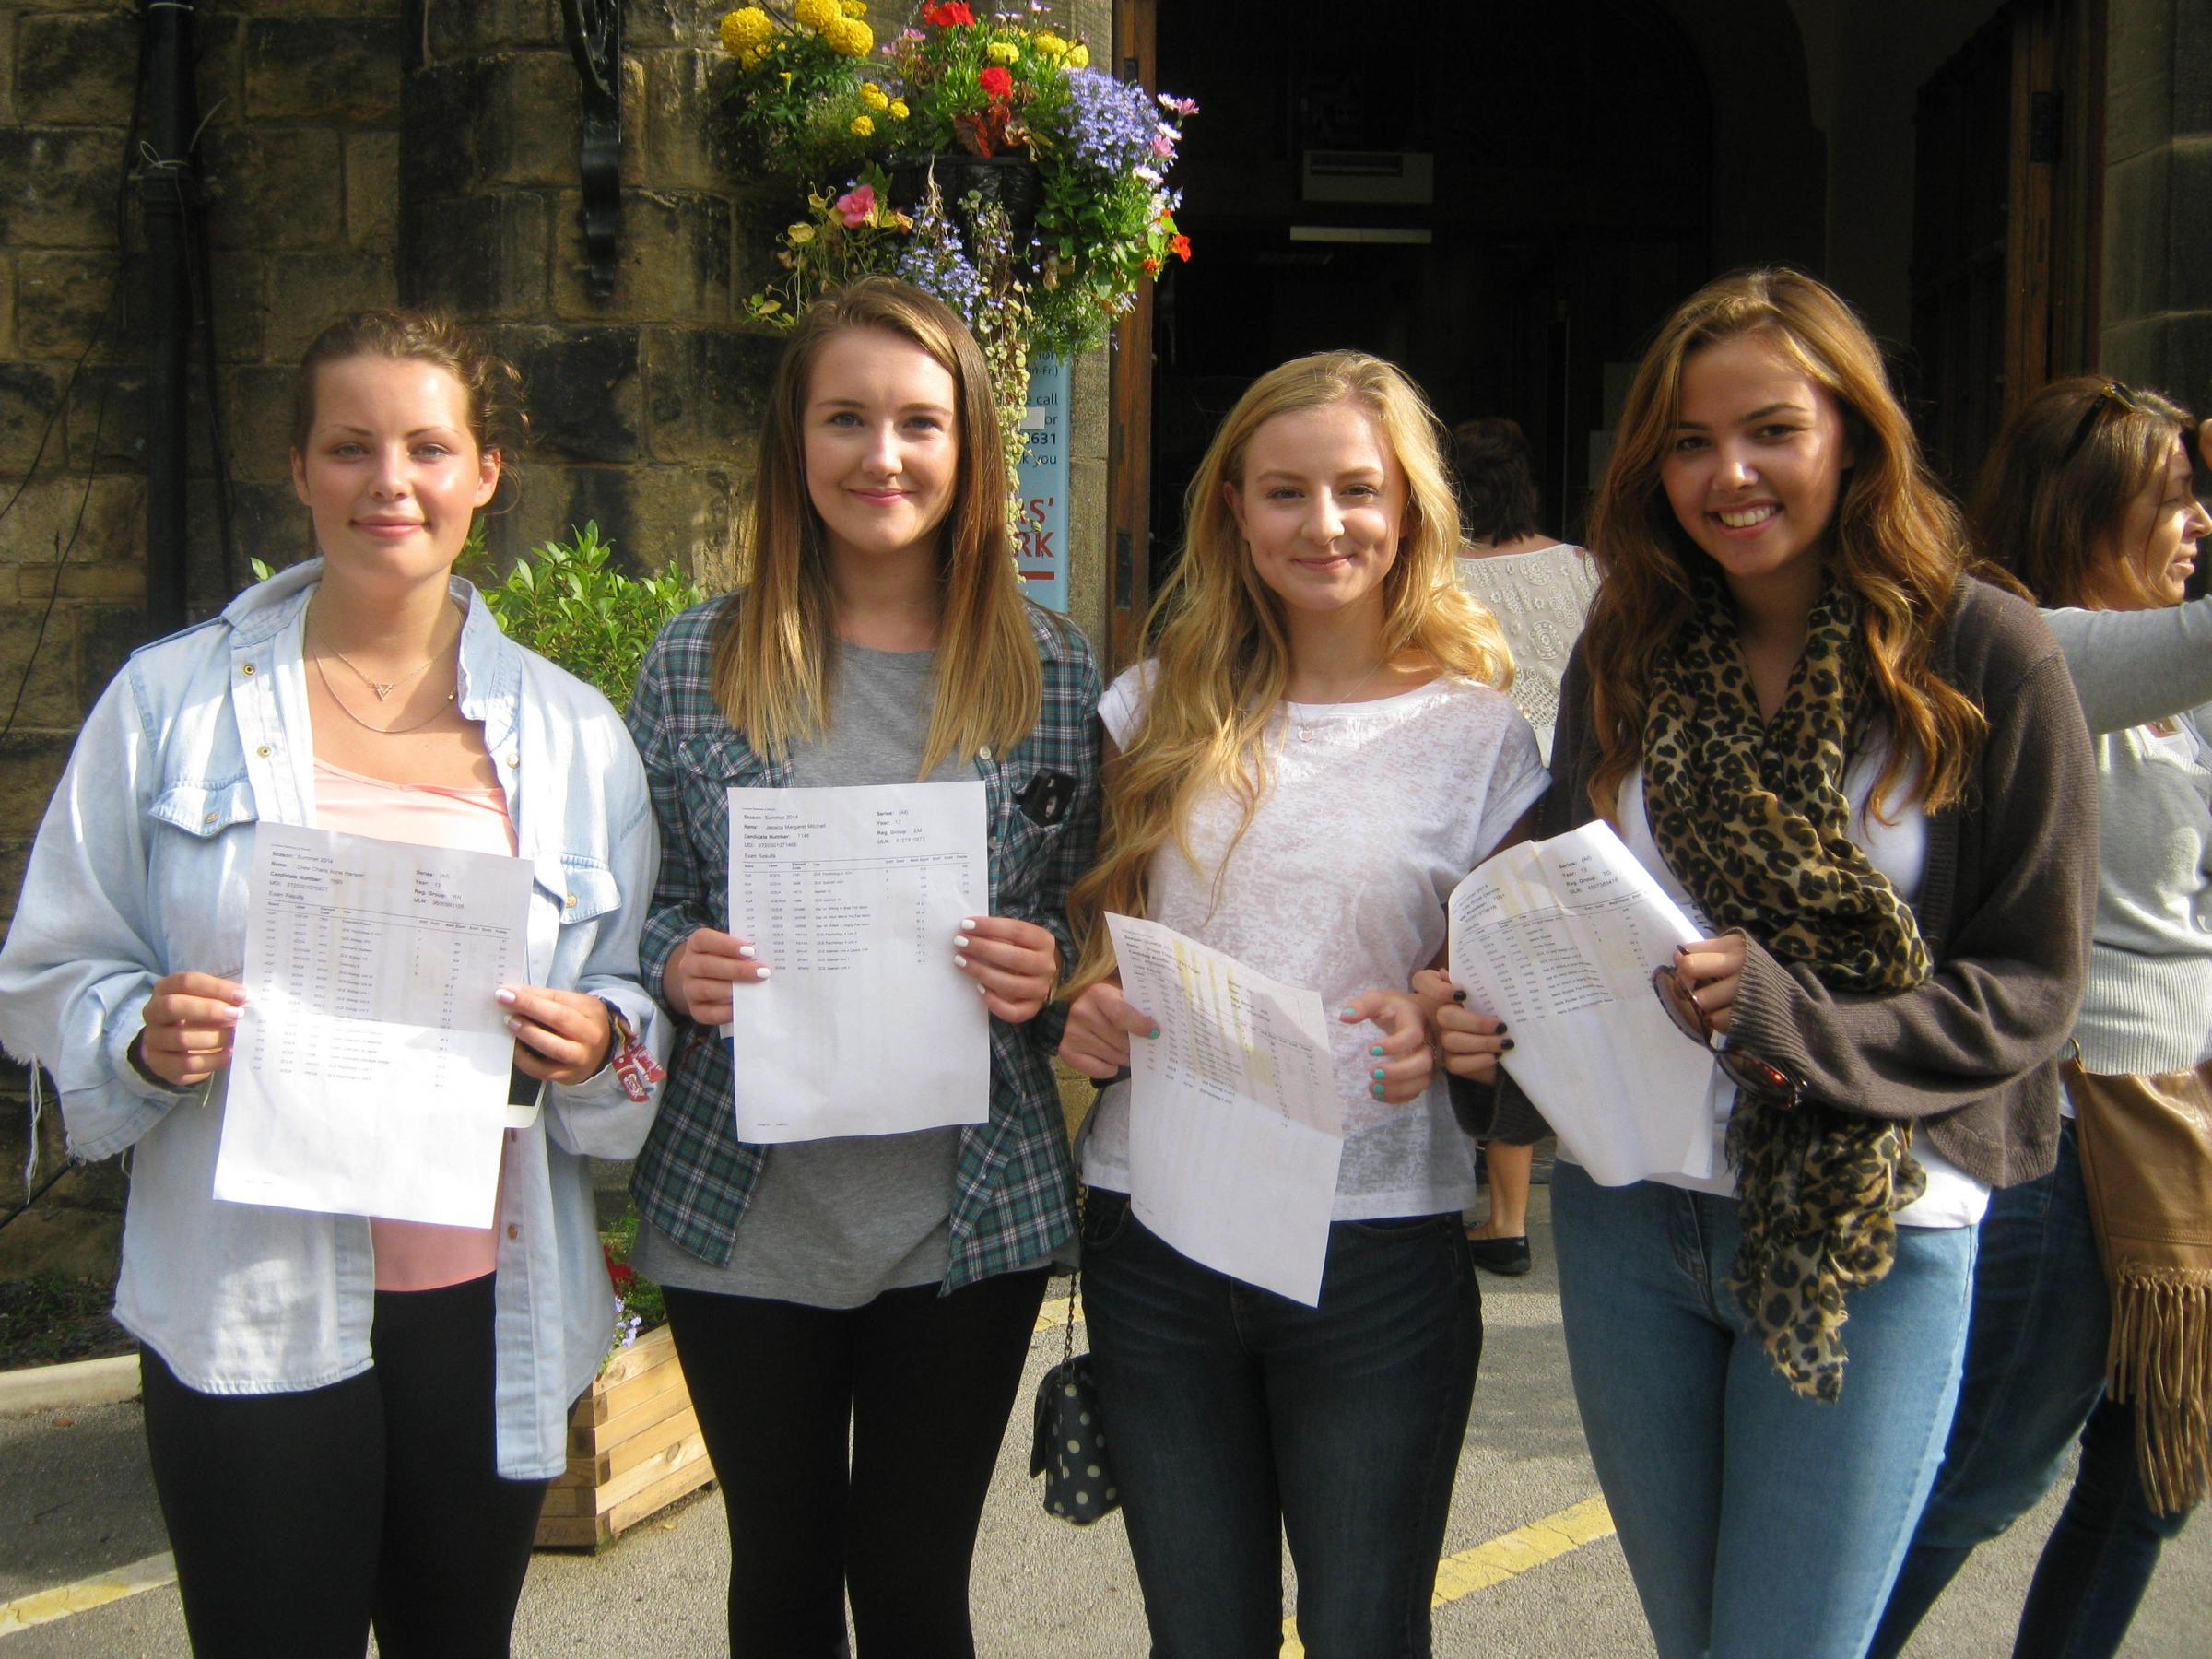 Drew Hanson, Jessica Mitchell, Poppy Padgett and Tilly Dennis have secured places at university after gaining good A-level results at Ilkley Grammar School